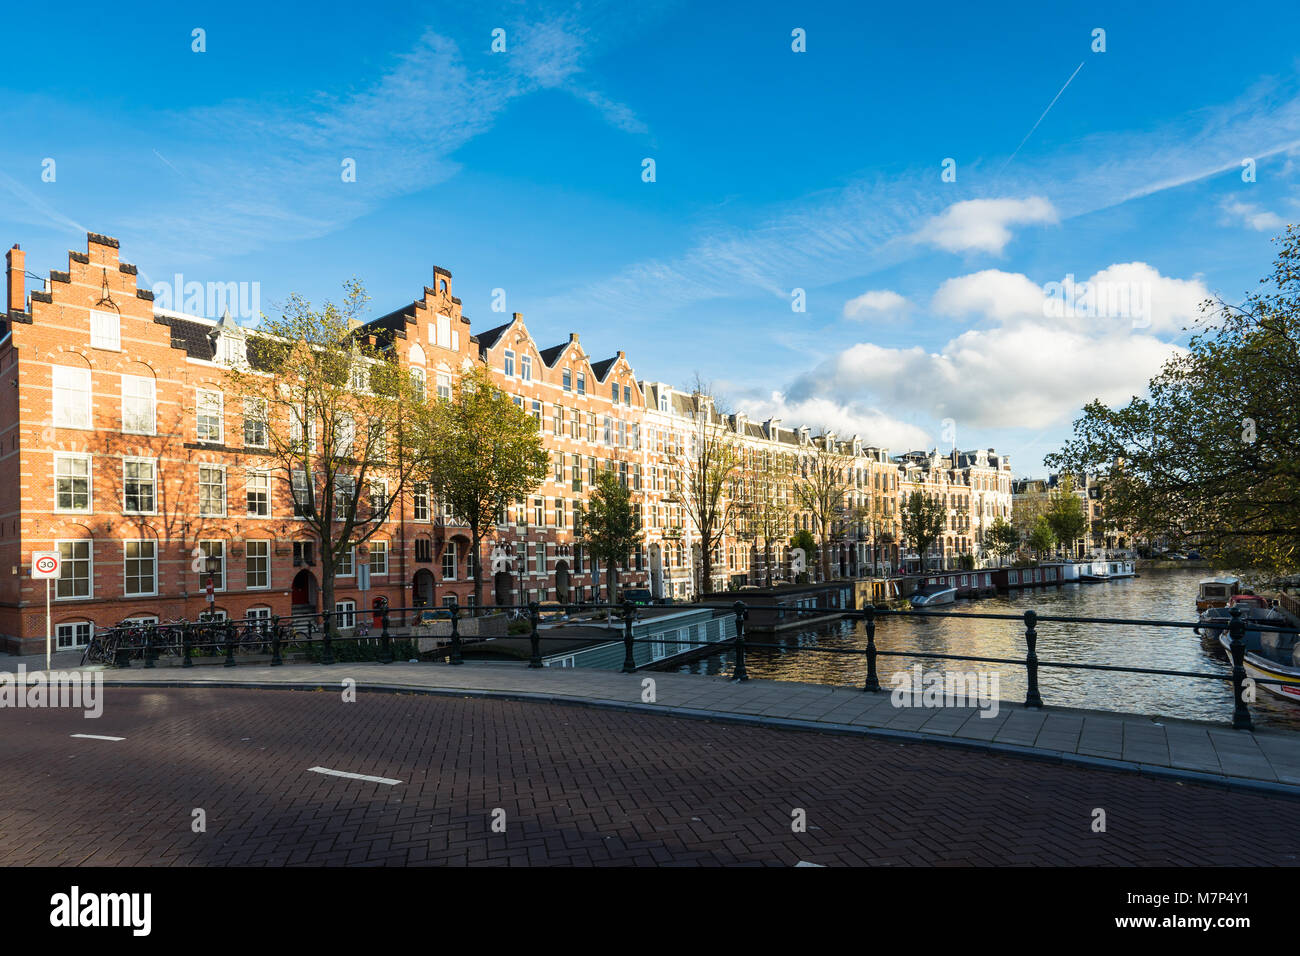 Stepped Gable Houses in Amsterdam - Stock Image